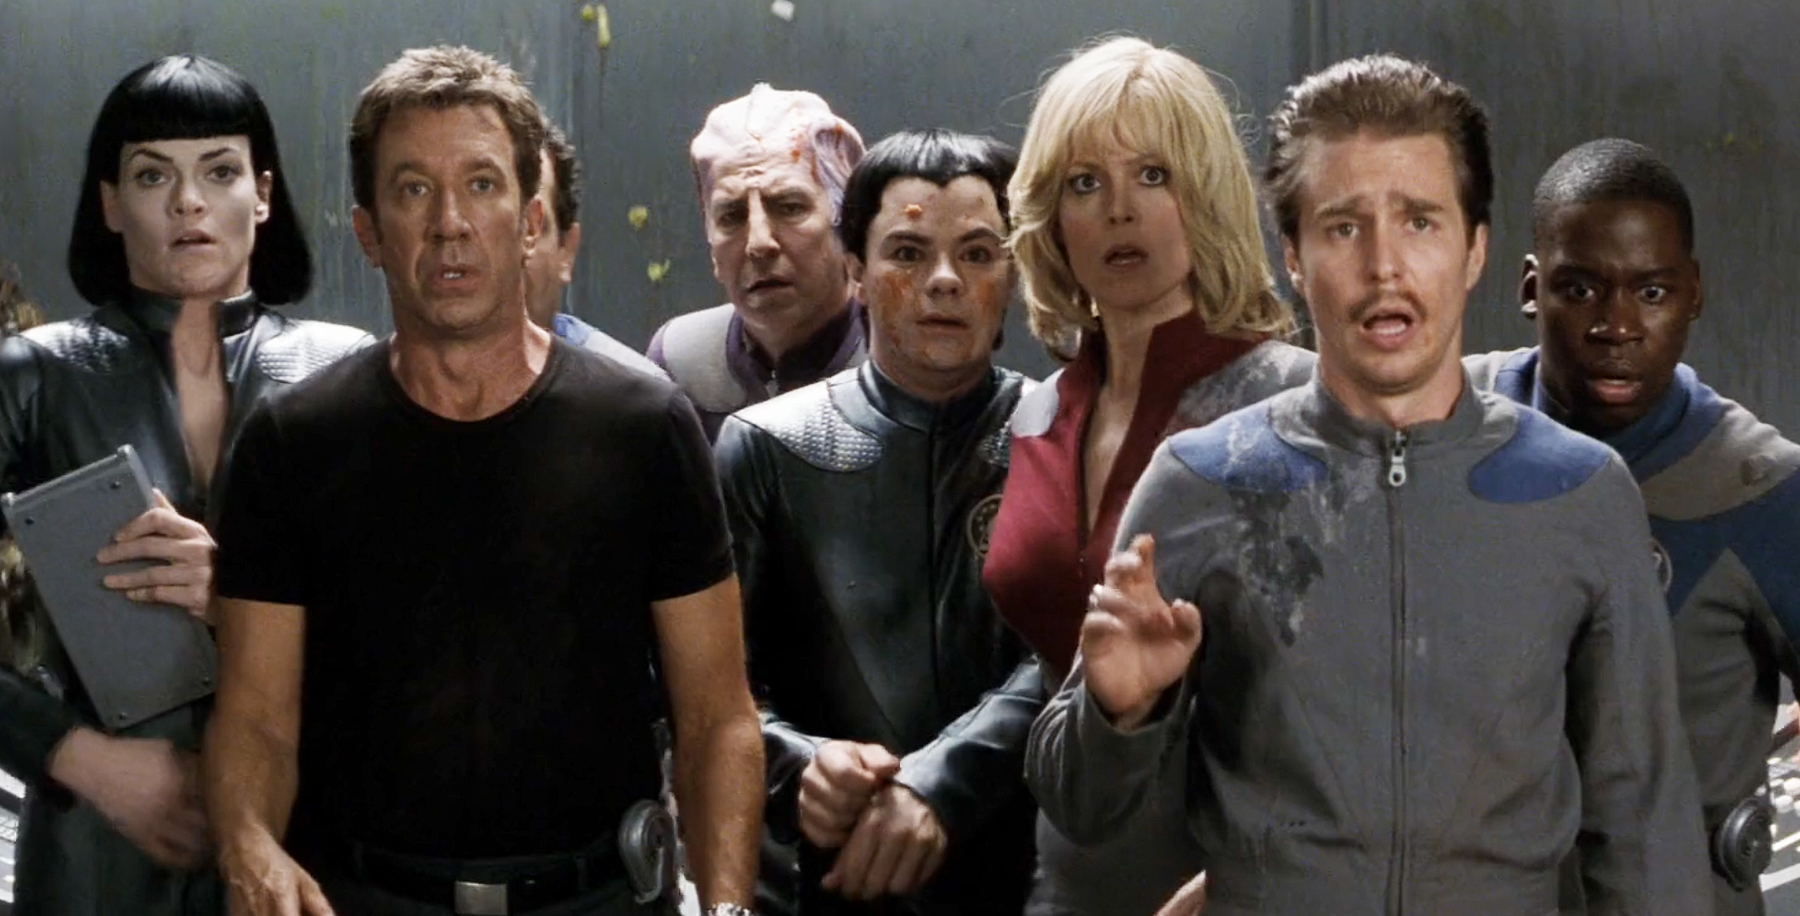 'Galaxy Quest 2' is'a fabulous script' based on Tim Allen thumbnail